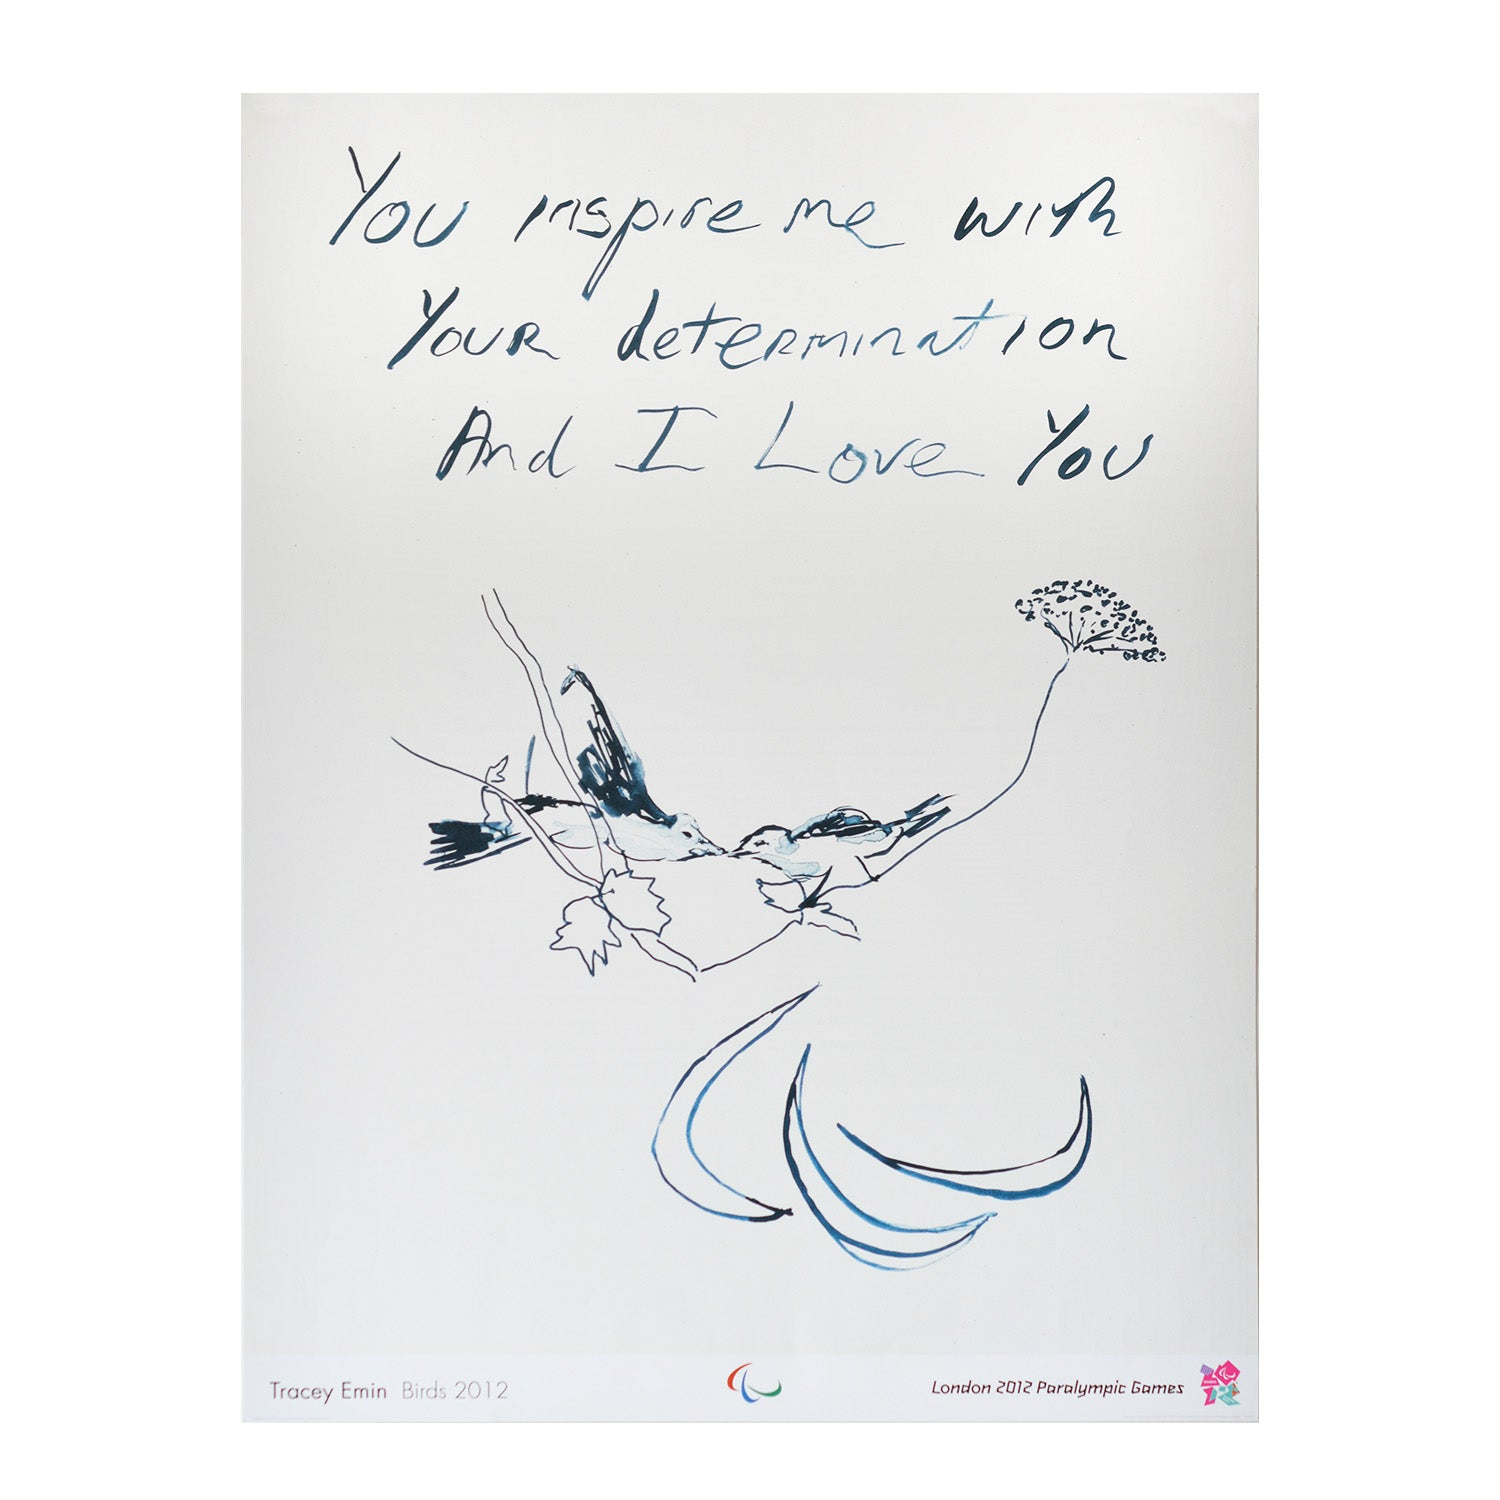 Official 2012 Paralympic Games poster Tracey Emin